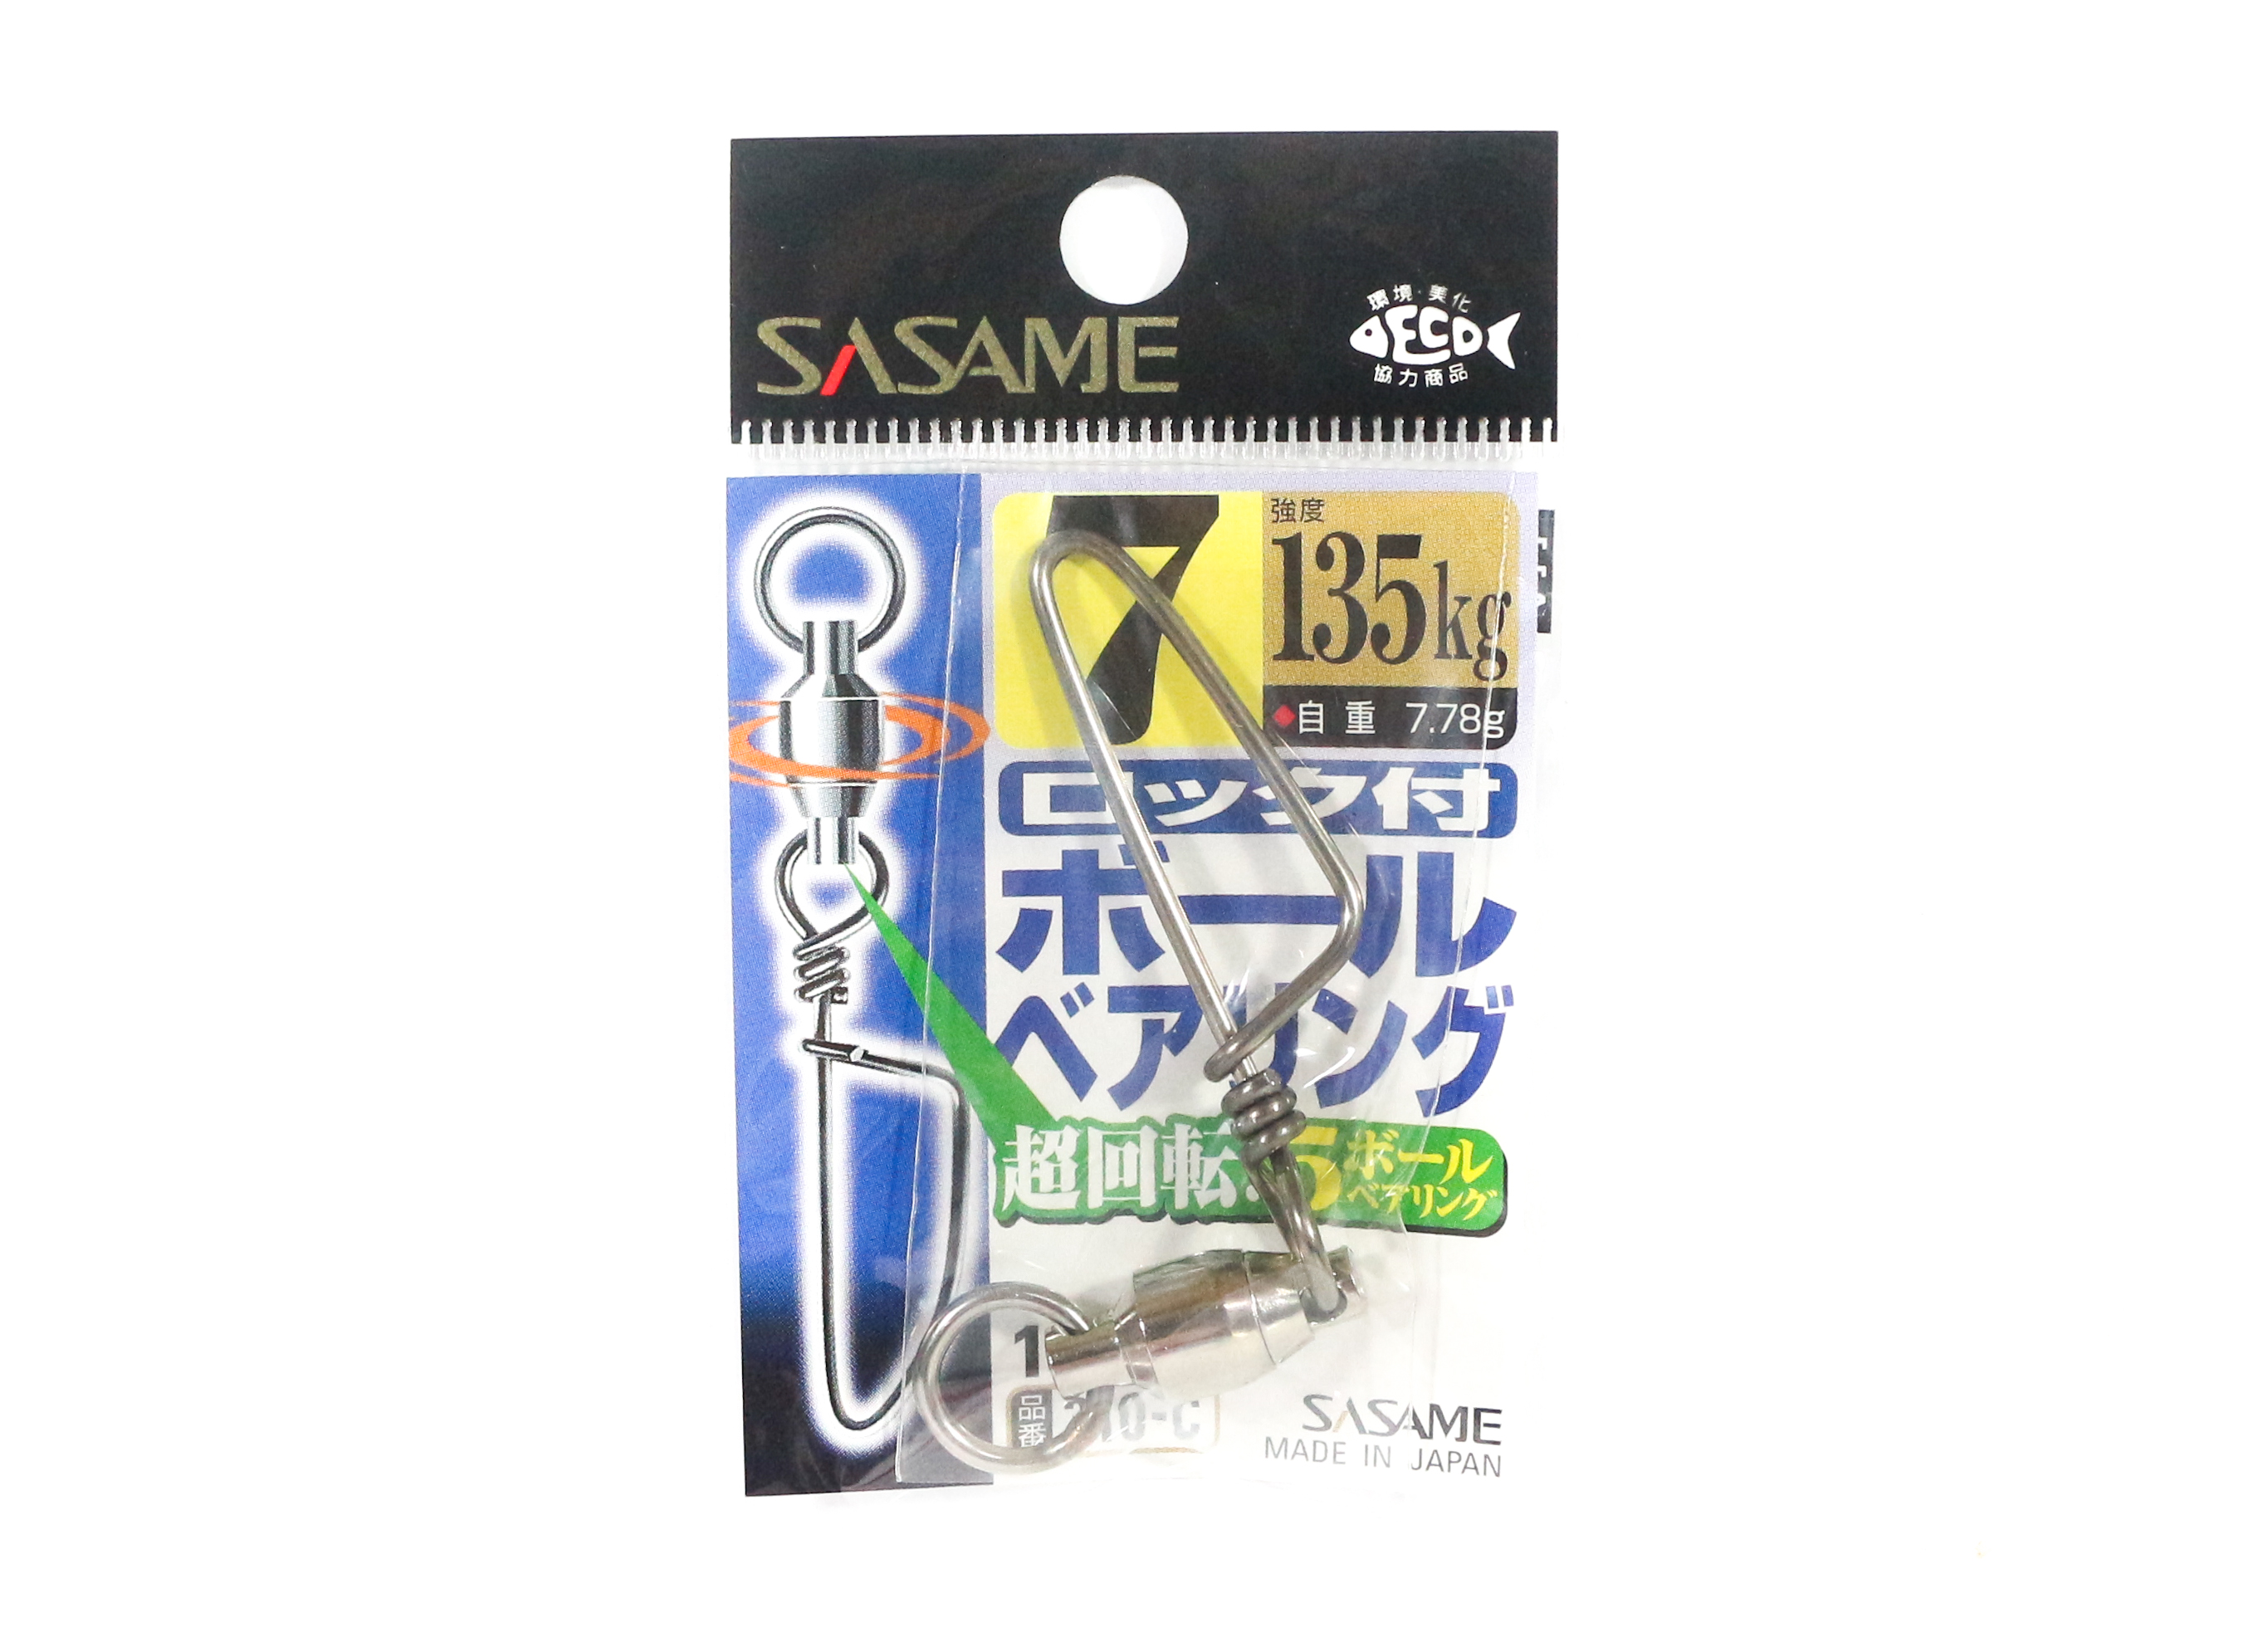 Sasame 310-C Ball Bearing Snap Swivels High Quality Size 7 (1683)